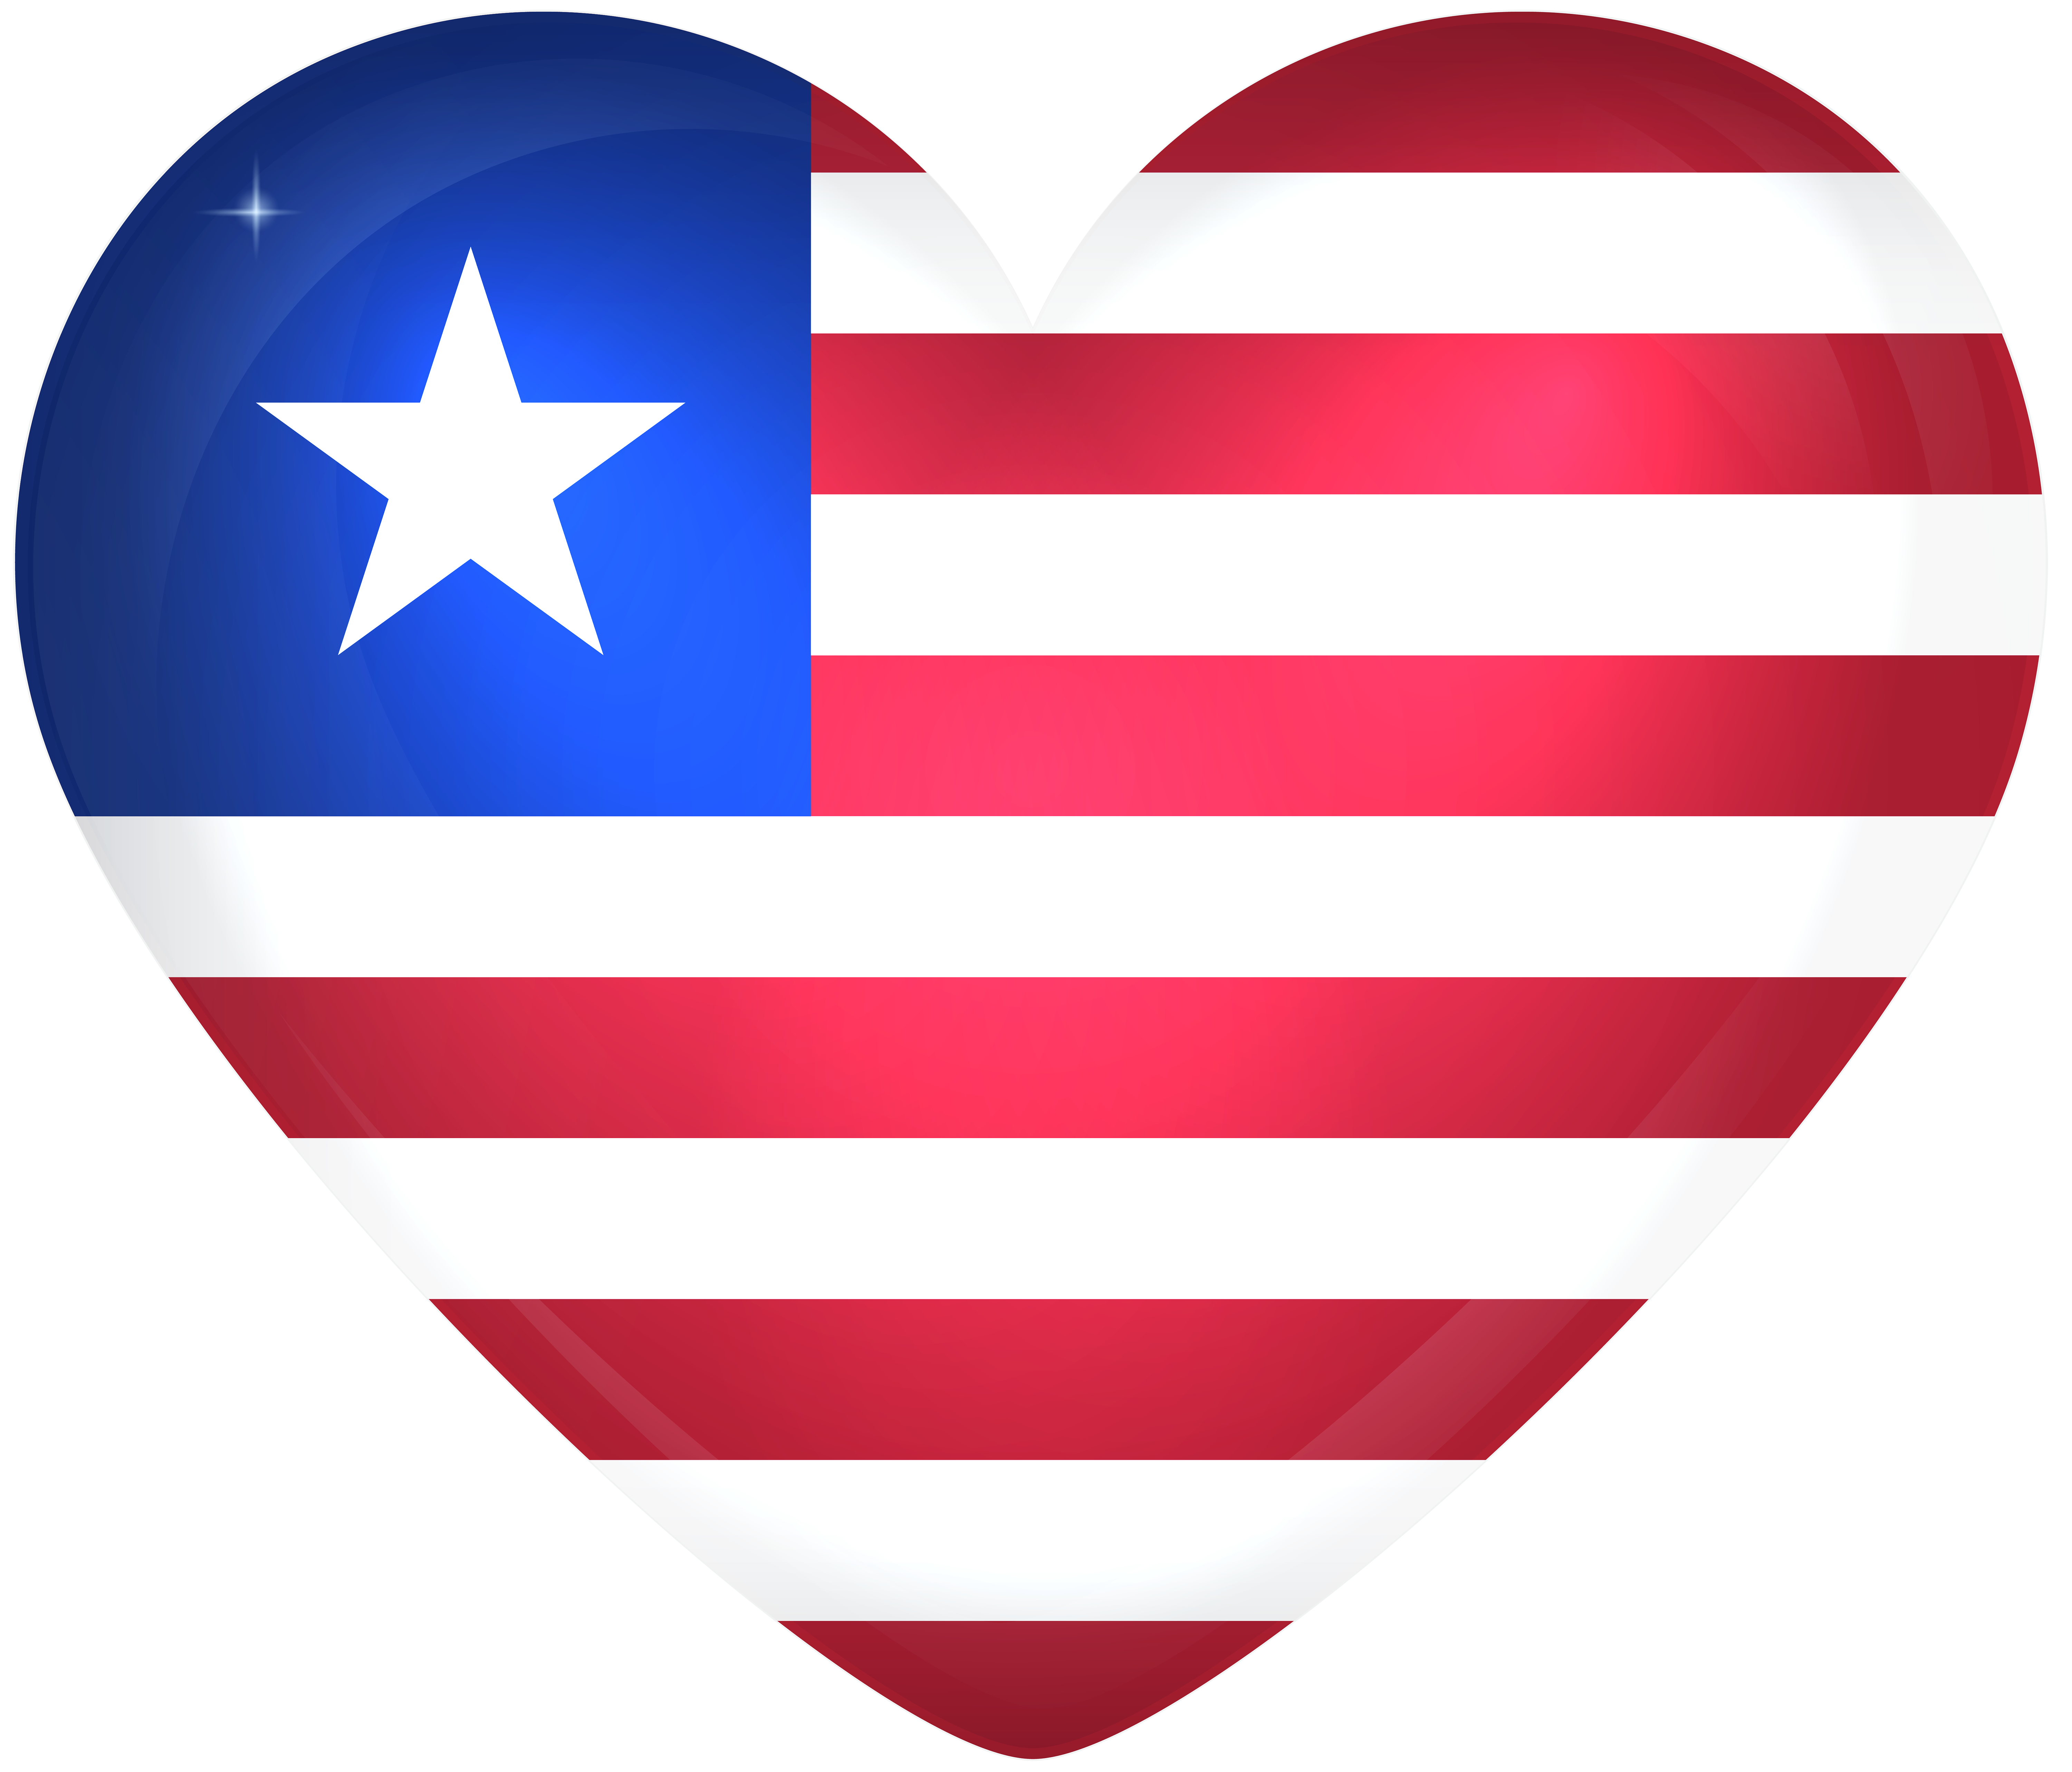 Hearts clipart flag. Liberia large heart gallery